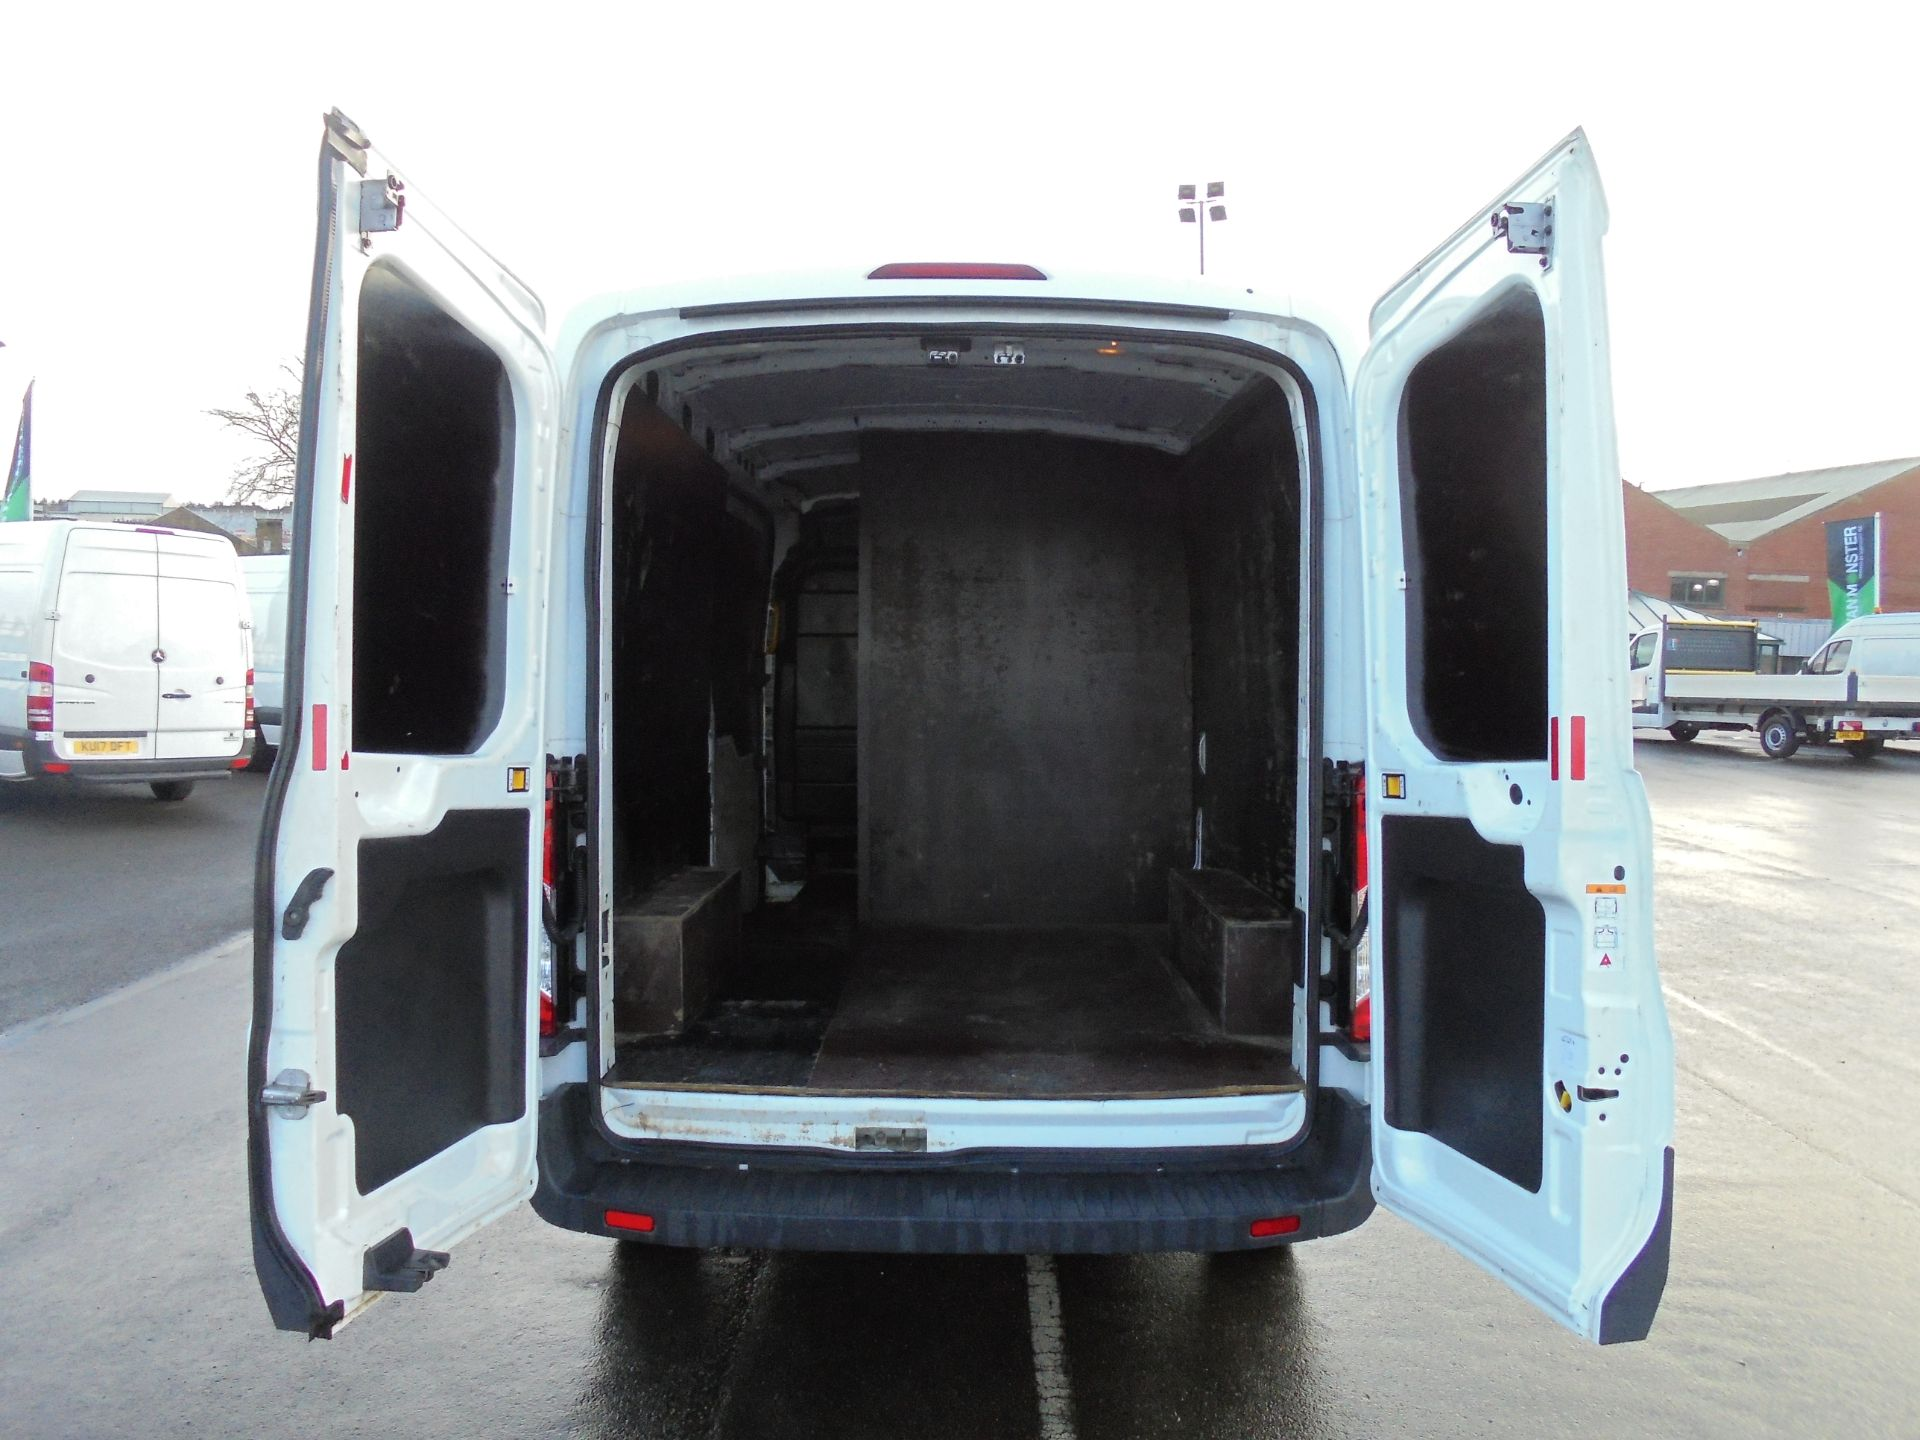 2016 Ford Transit 350 2.2 Tdci 125Ps L3 H2 Van Aftermarket Alarm and Security Locks (YB66WYX) Image 25